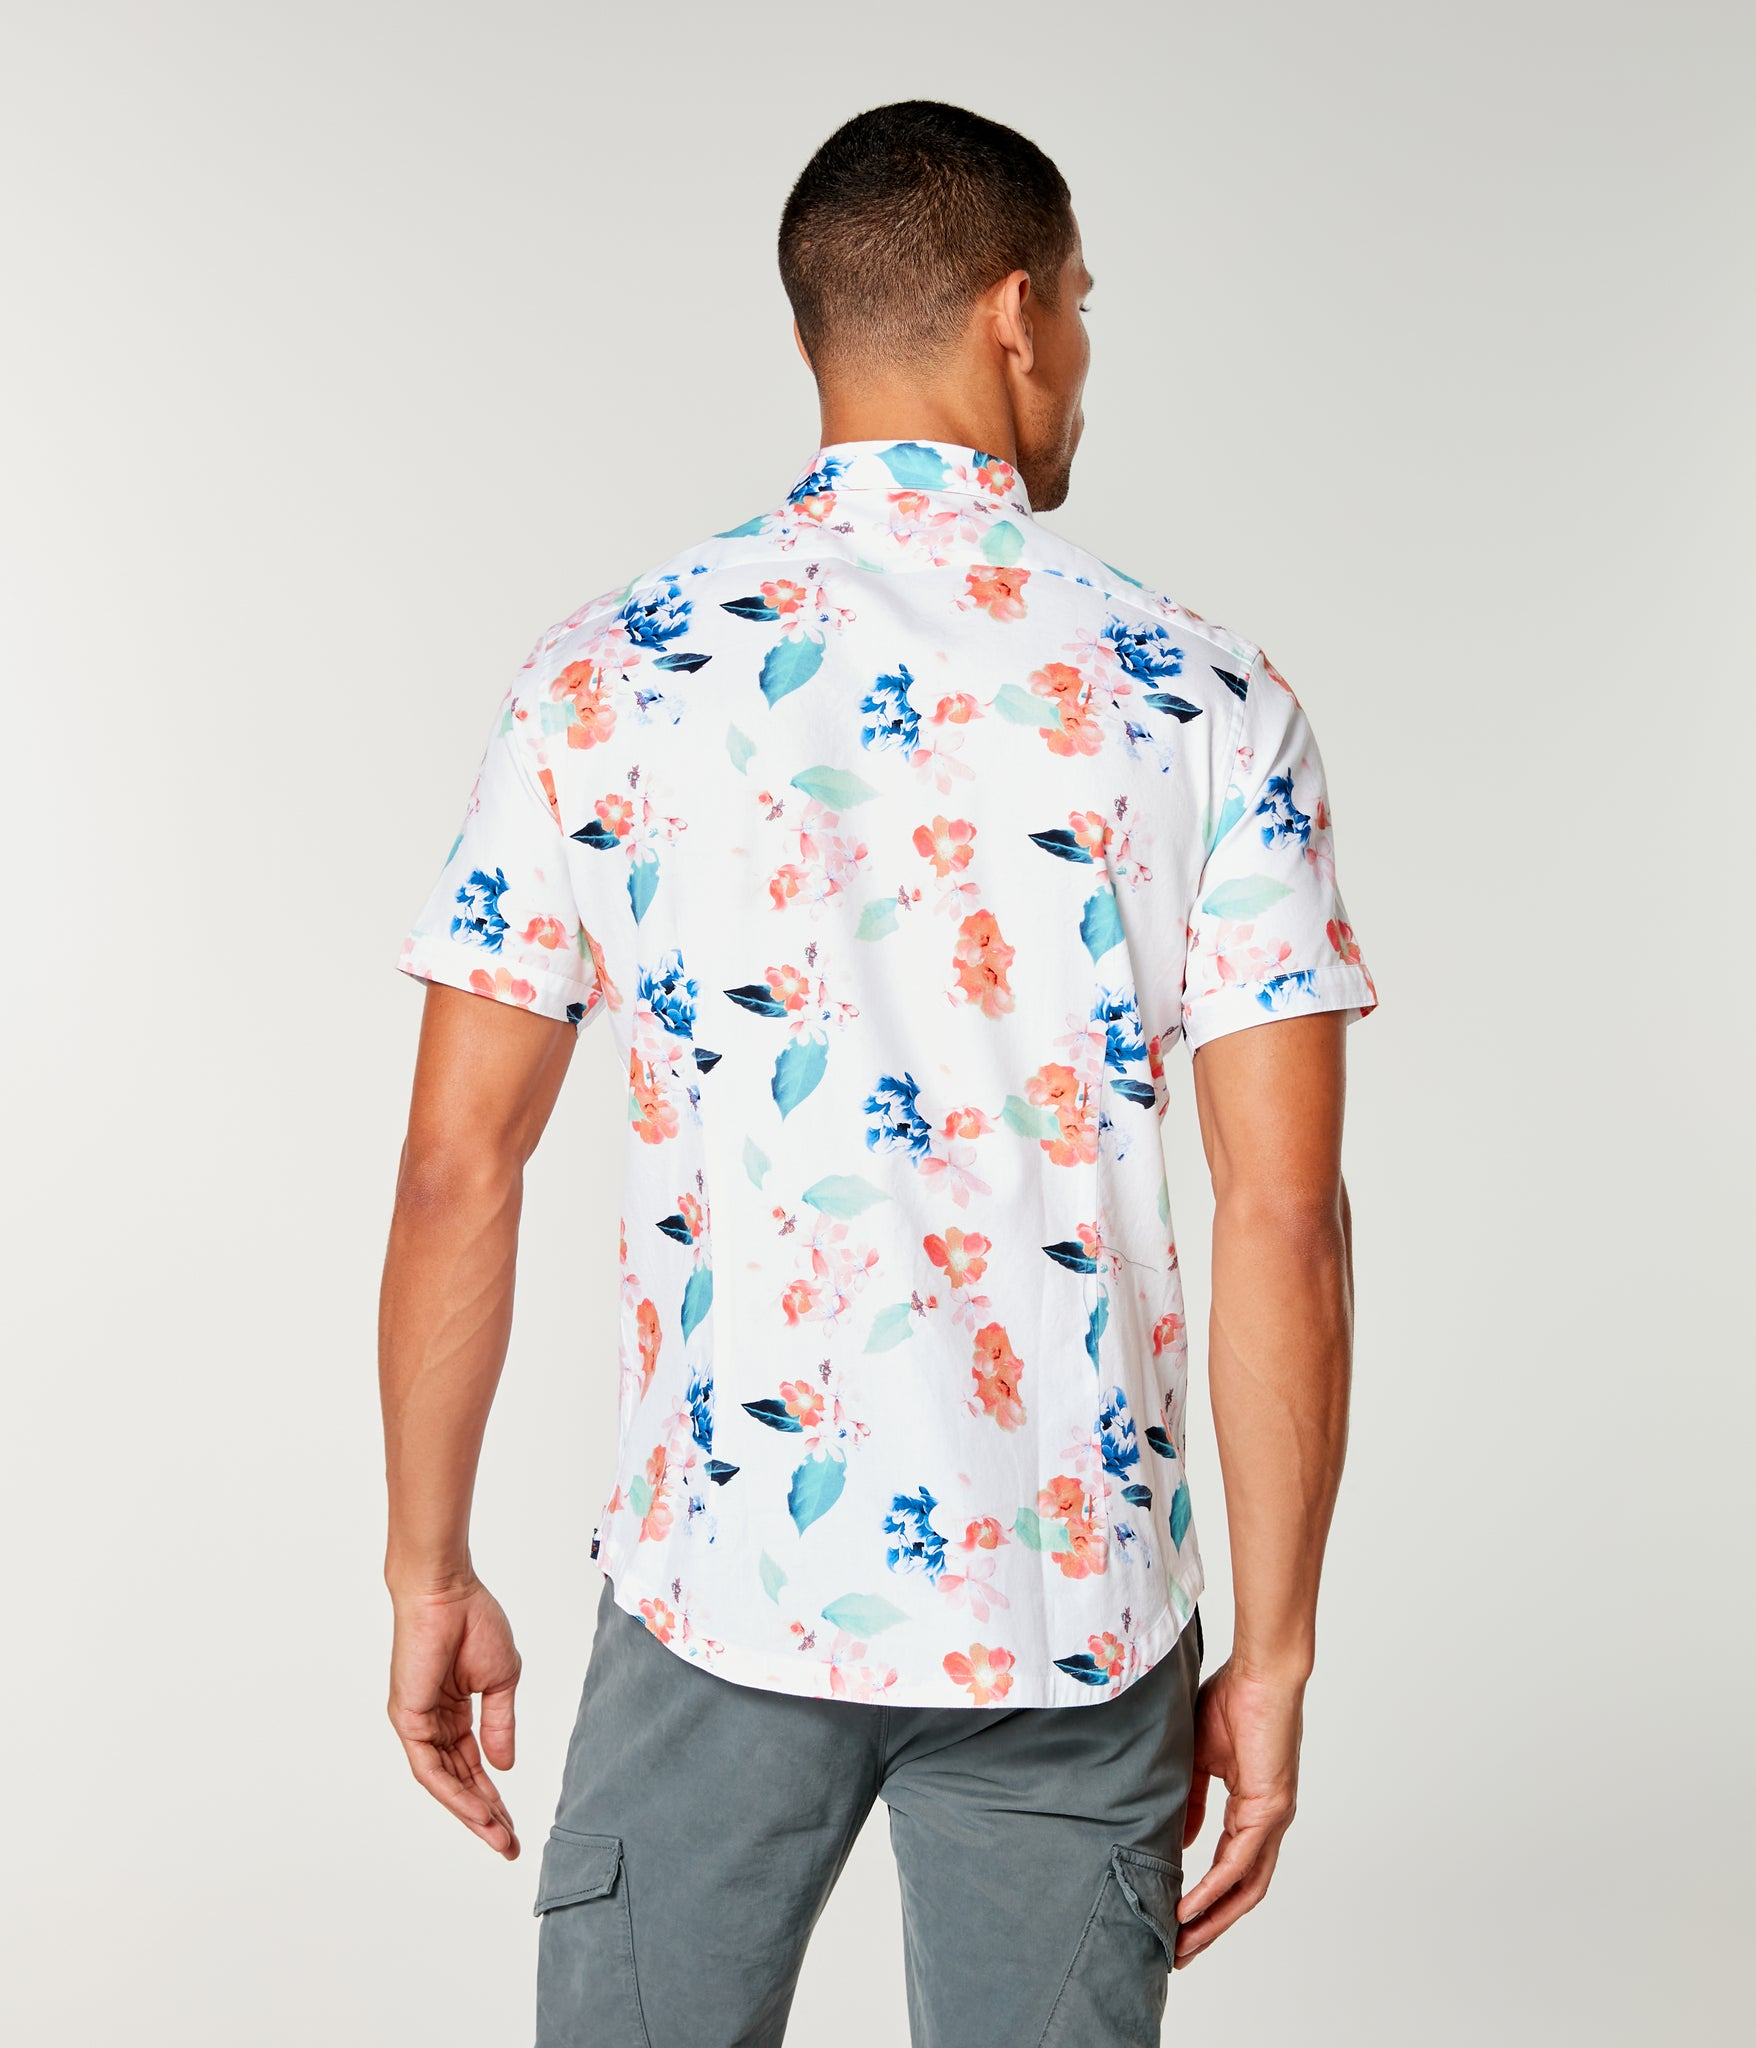 On-Point Print Shirt Short Sleeve - White Amalfi Floral